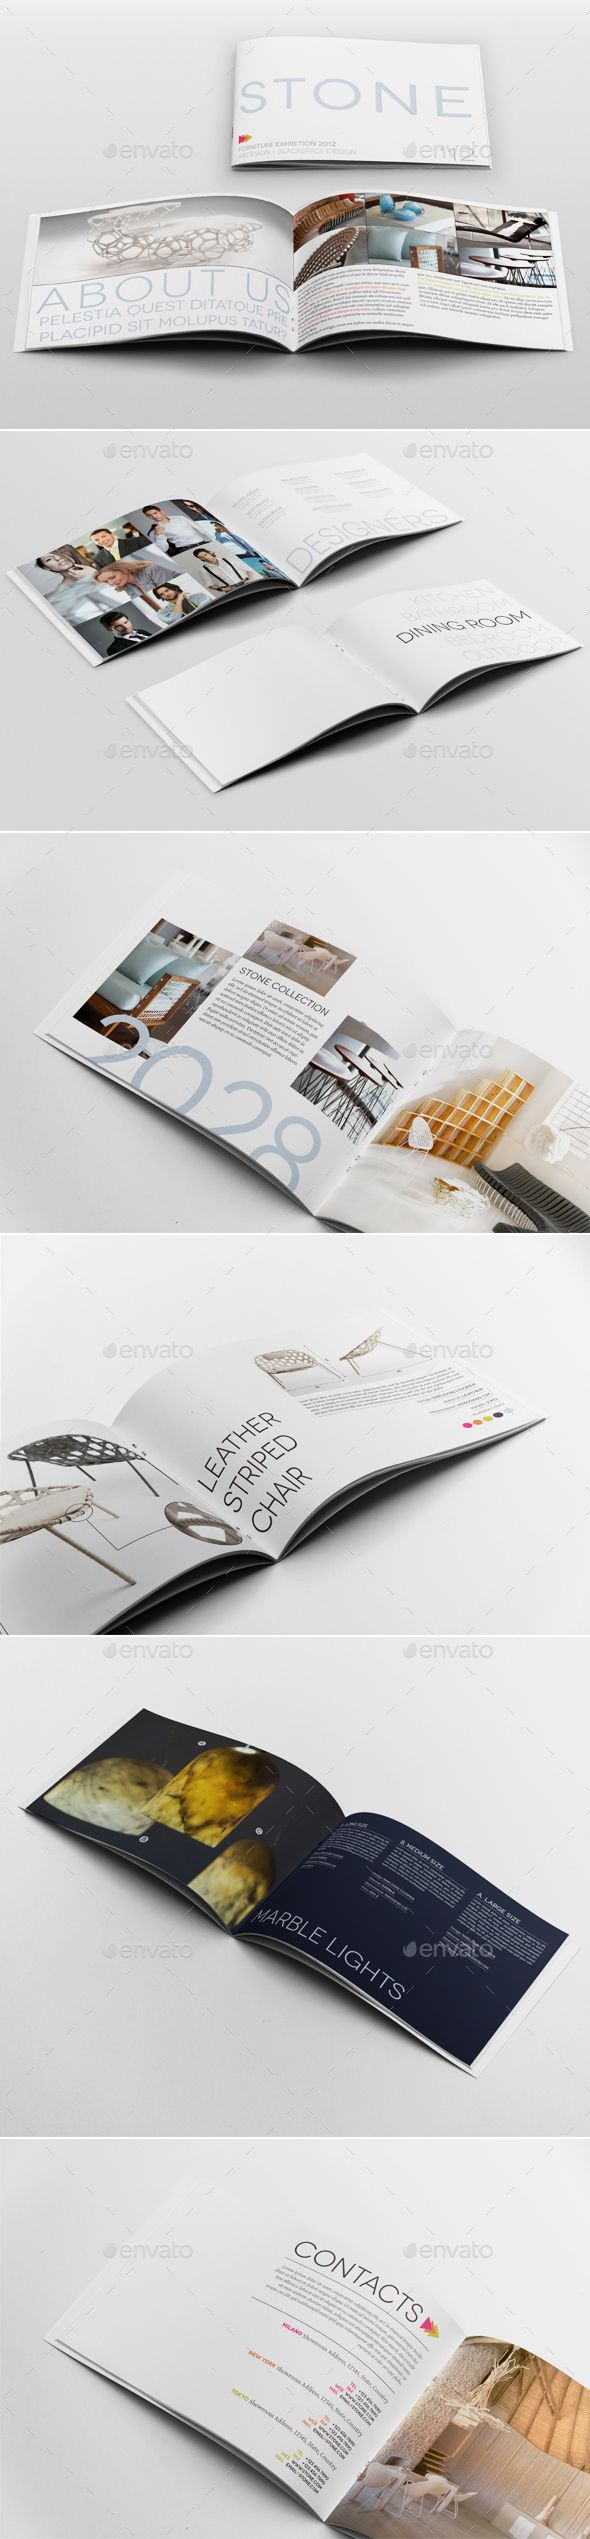 843 best Best Brochure Designs | Catalogue | Portfolio images on ...